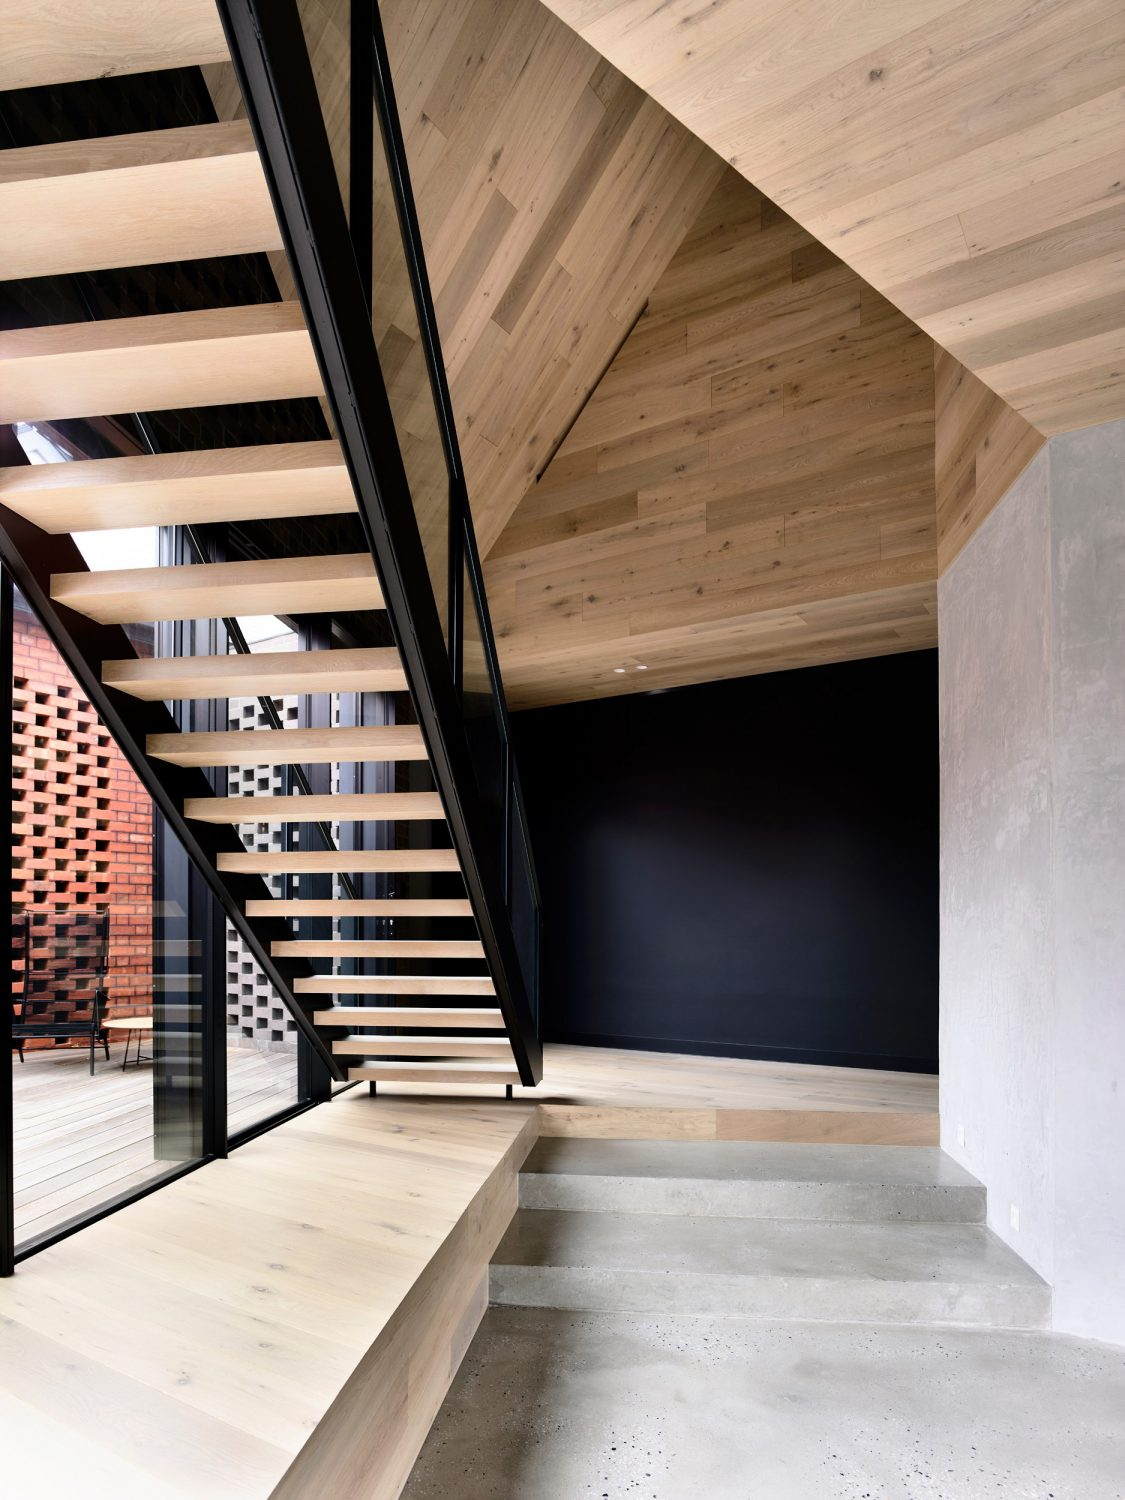 York St. House by Jackson Clements Burrows Architects